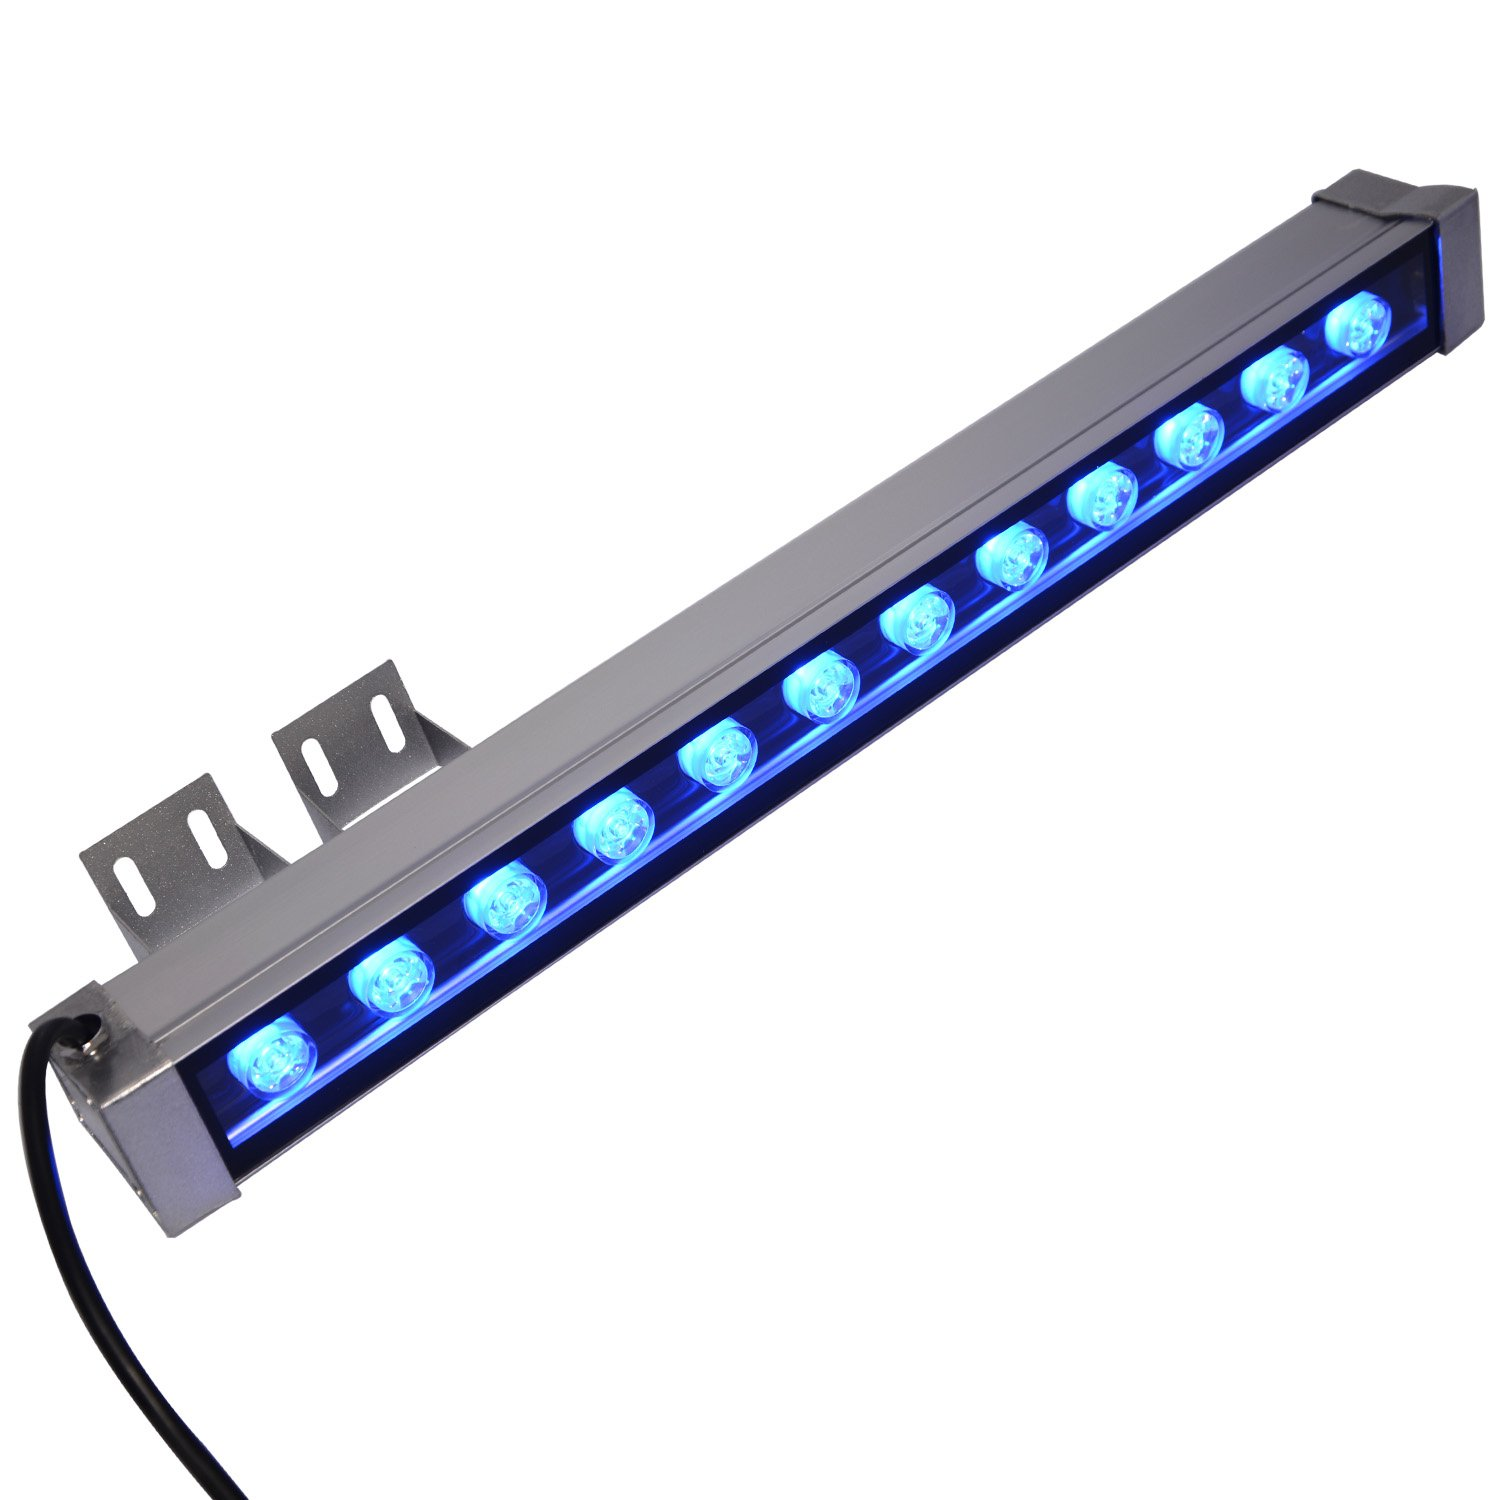 RSN LED Wall Washer Light 12W Night Light Colorful Blue Color 2 Years Warranty Linear LED Bar Light 9W Alloy DJ LED Waterproof Lights for Outdoor Hotel Stadium